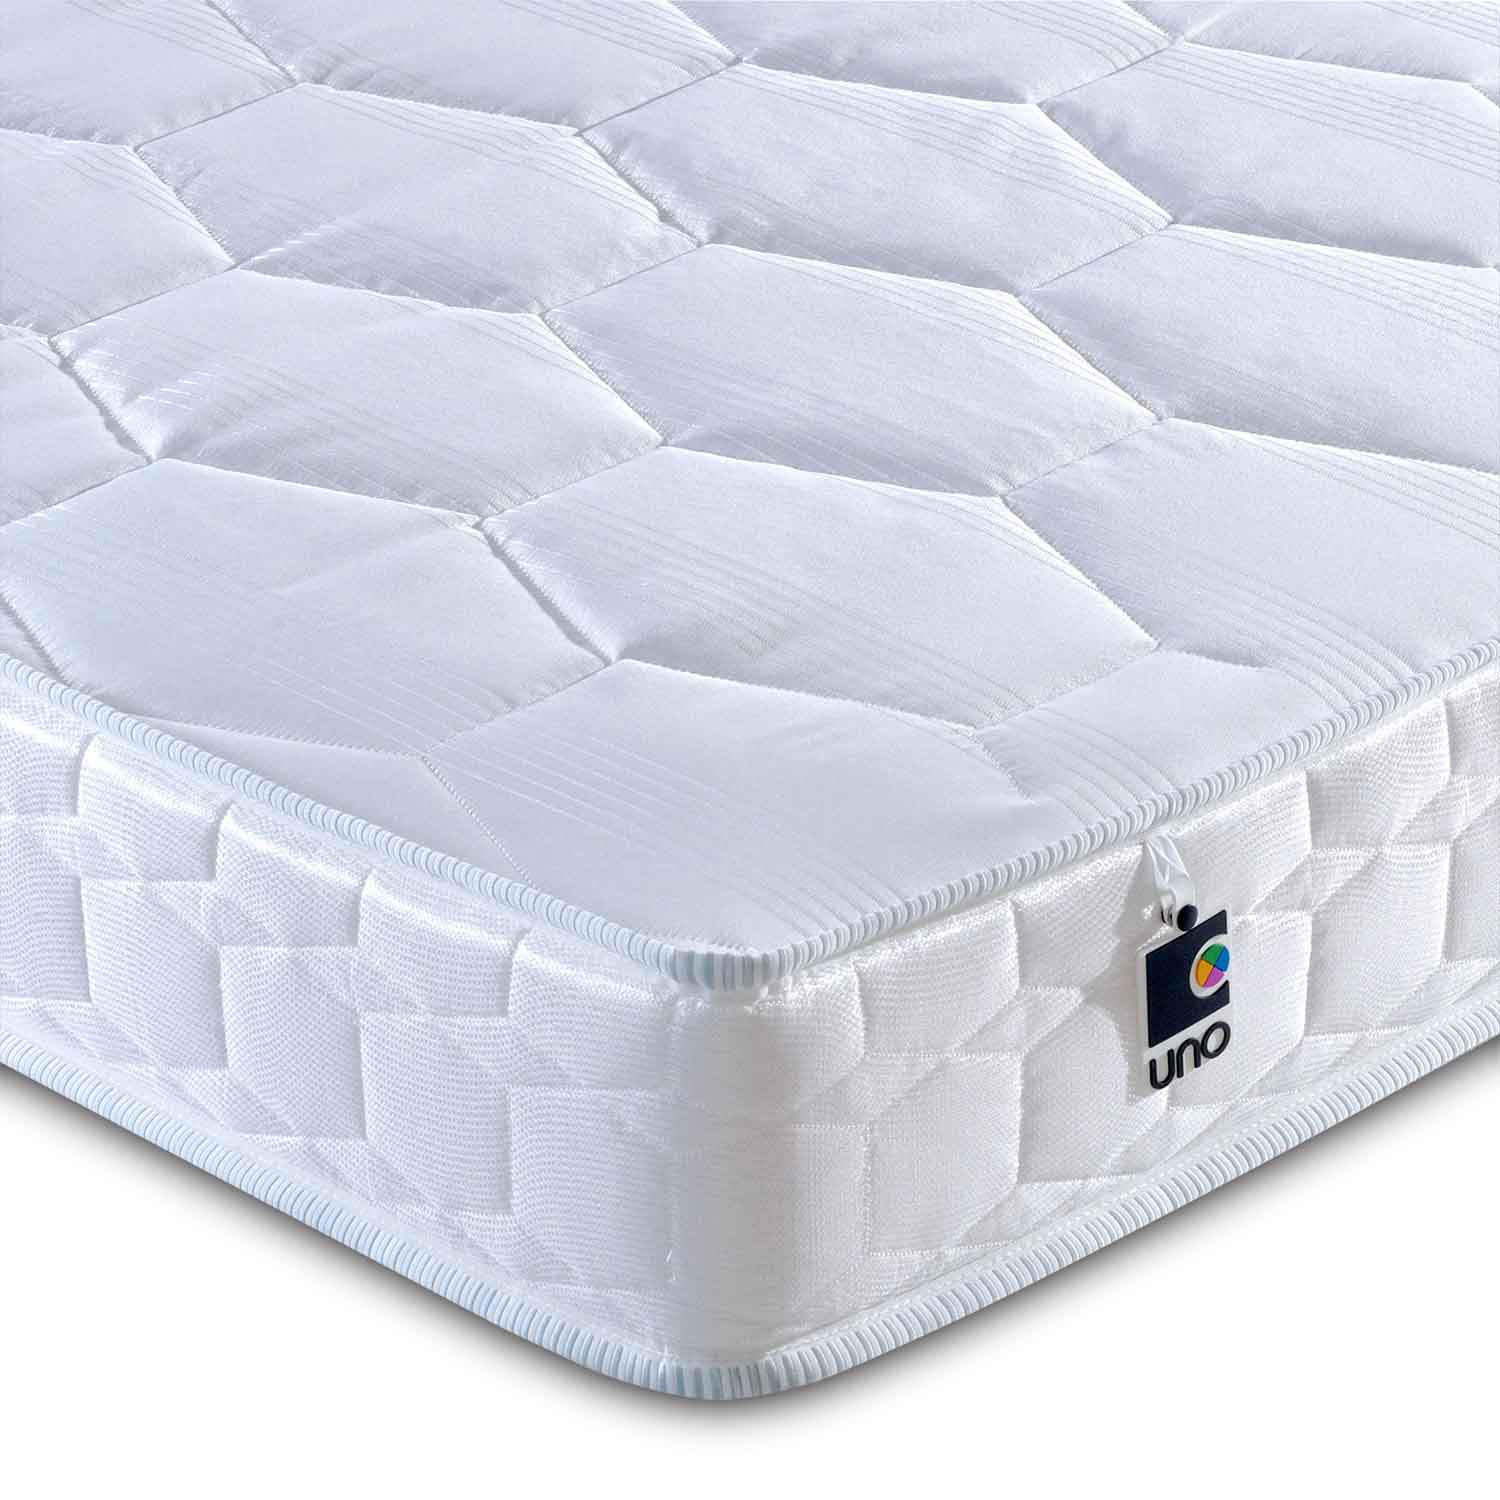 Photo of Uno deluxe 4ft small double 14cm deep mattress